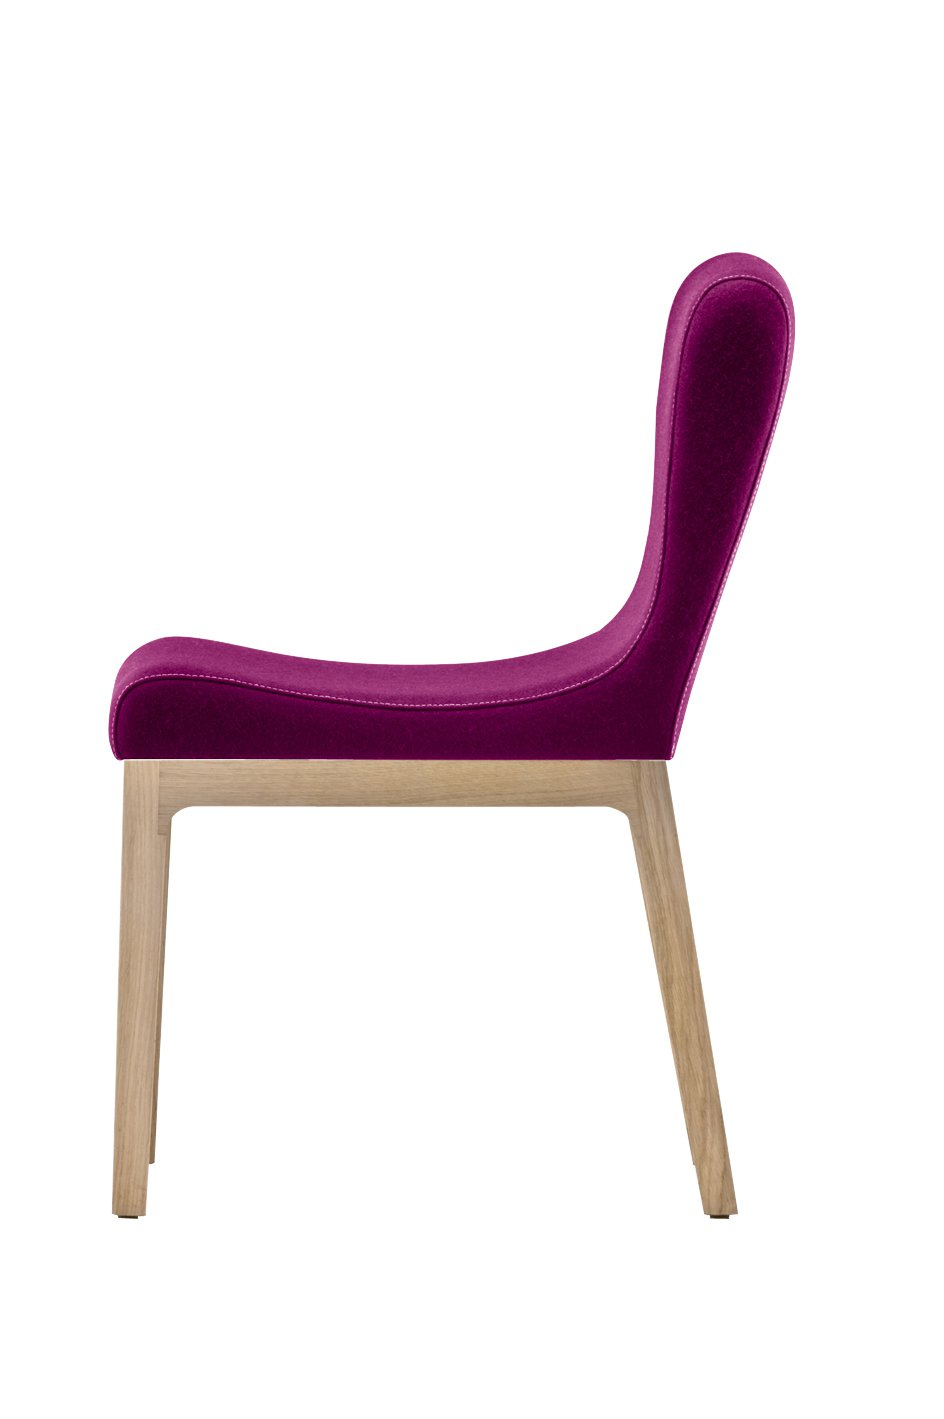 Gilda chair from Pedrali